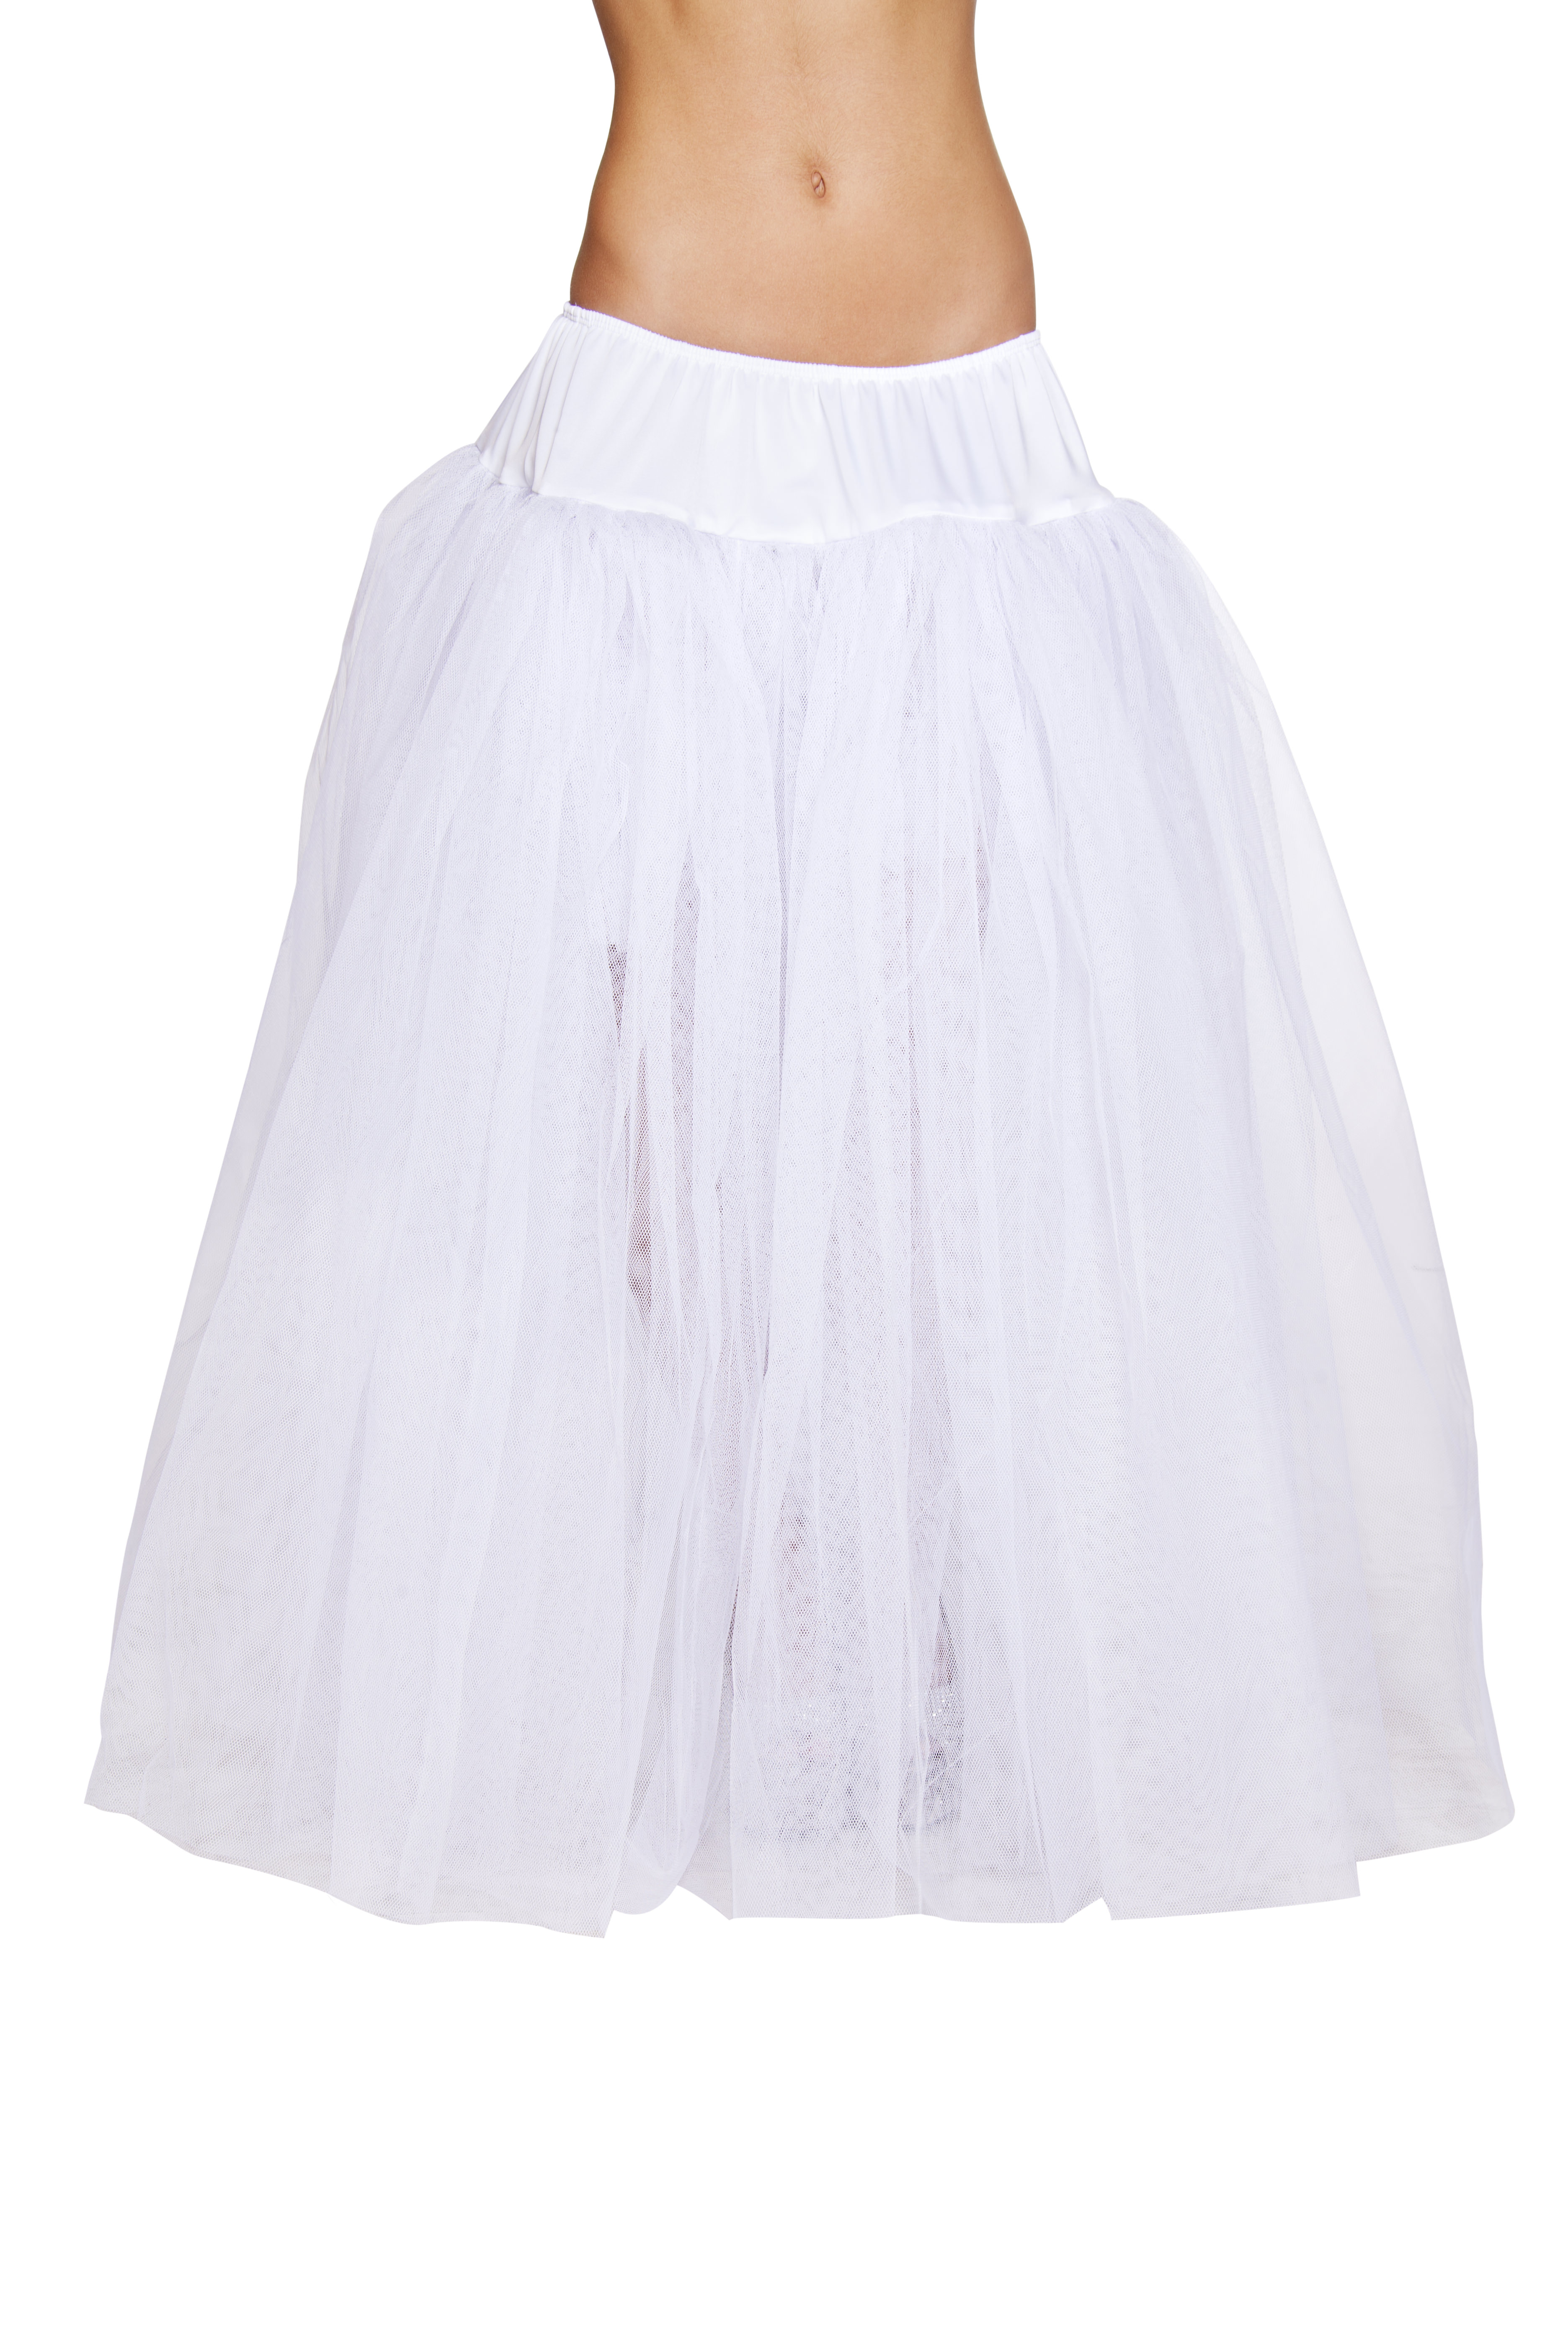 Full Length White Petticoat